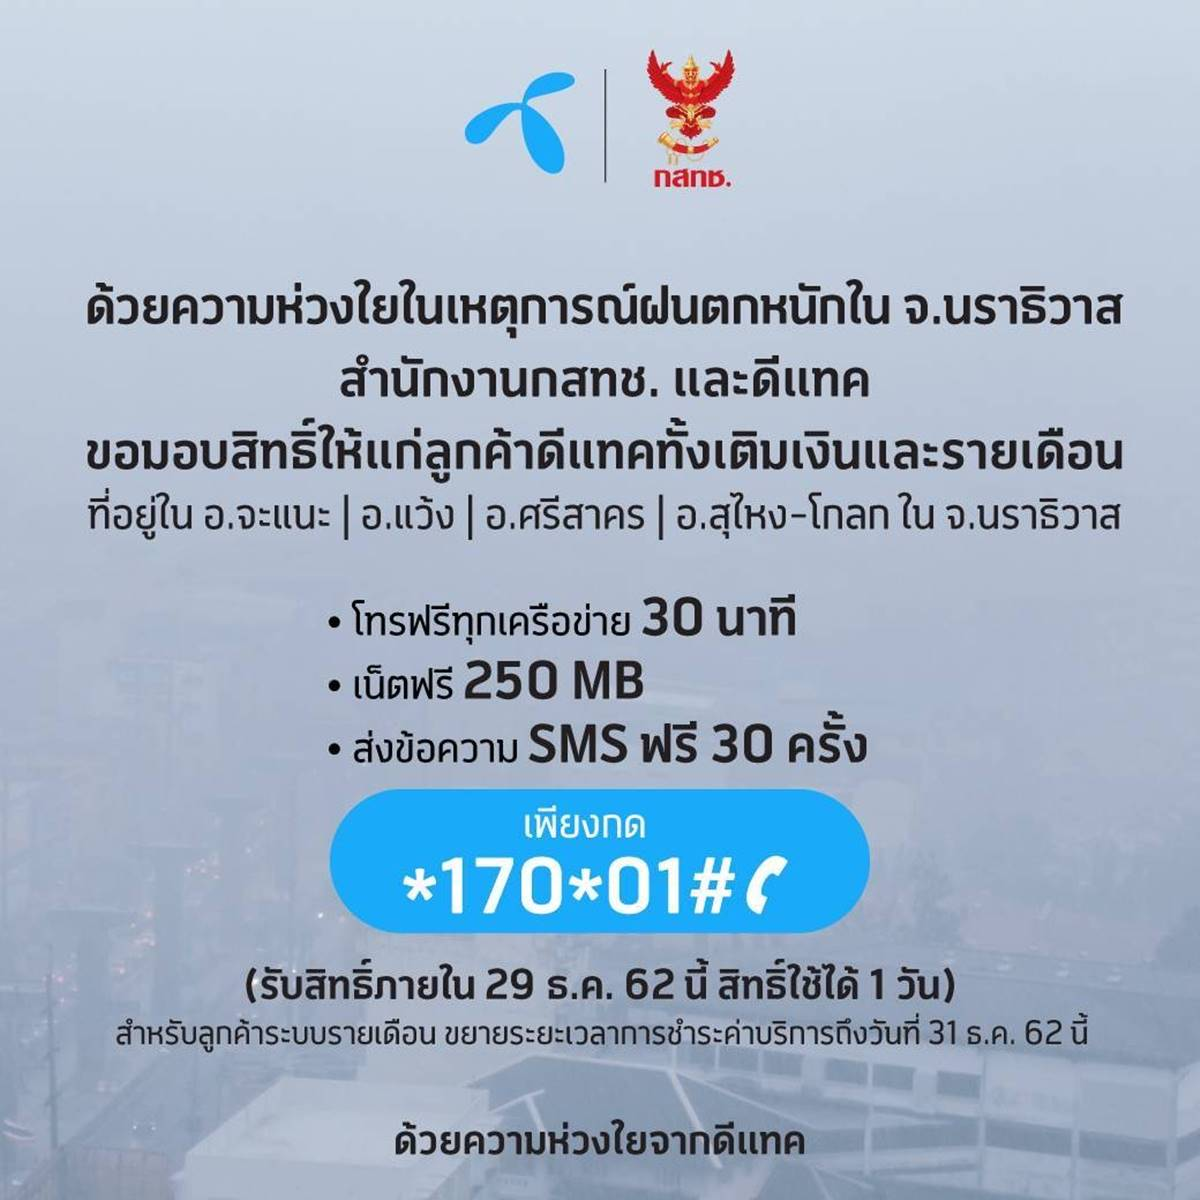 dtac cares for customers experiencing flooding in Narathiwat.